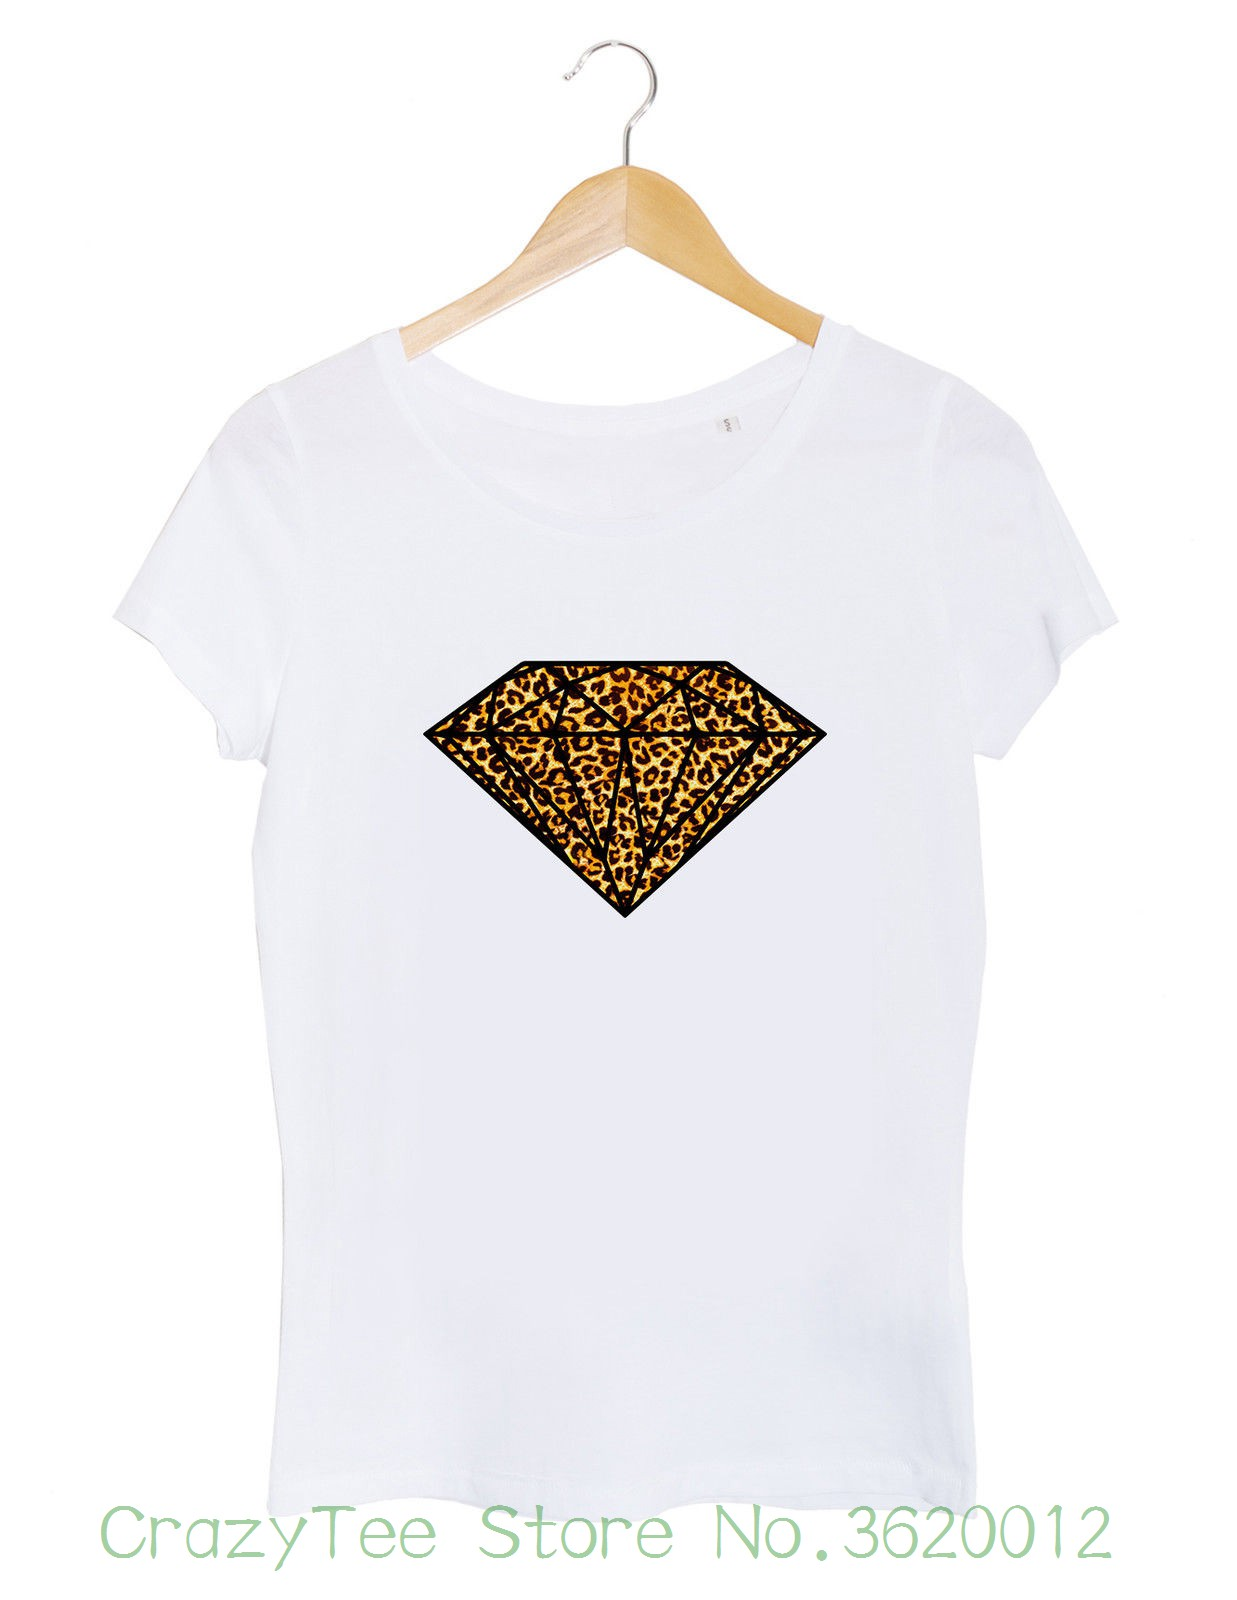 Women's Tee T-shirt Femme Diamant Safari Tigre Afrique Animal Mode Blog Beyonce Paris France New Arrival Summer Style image